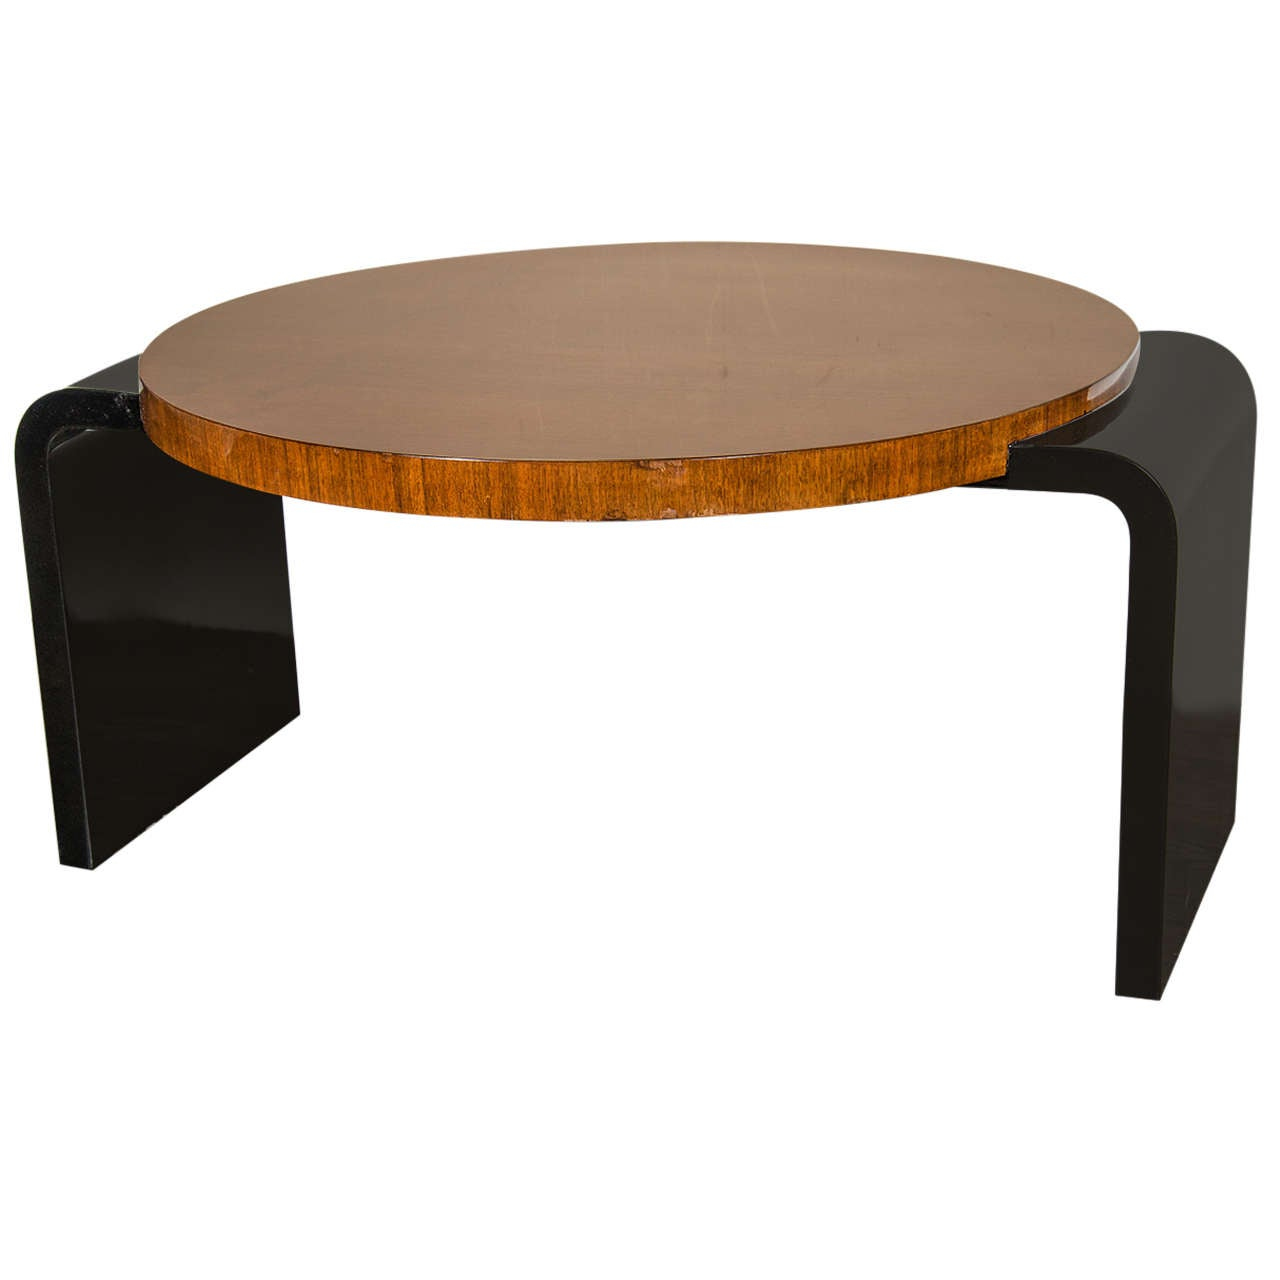 Art Deco Occasional Or Cocktail Table By The Modernage Co For Sale At 1stdibs